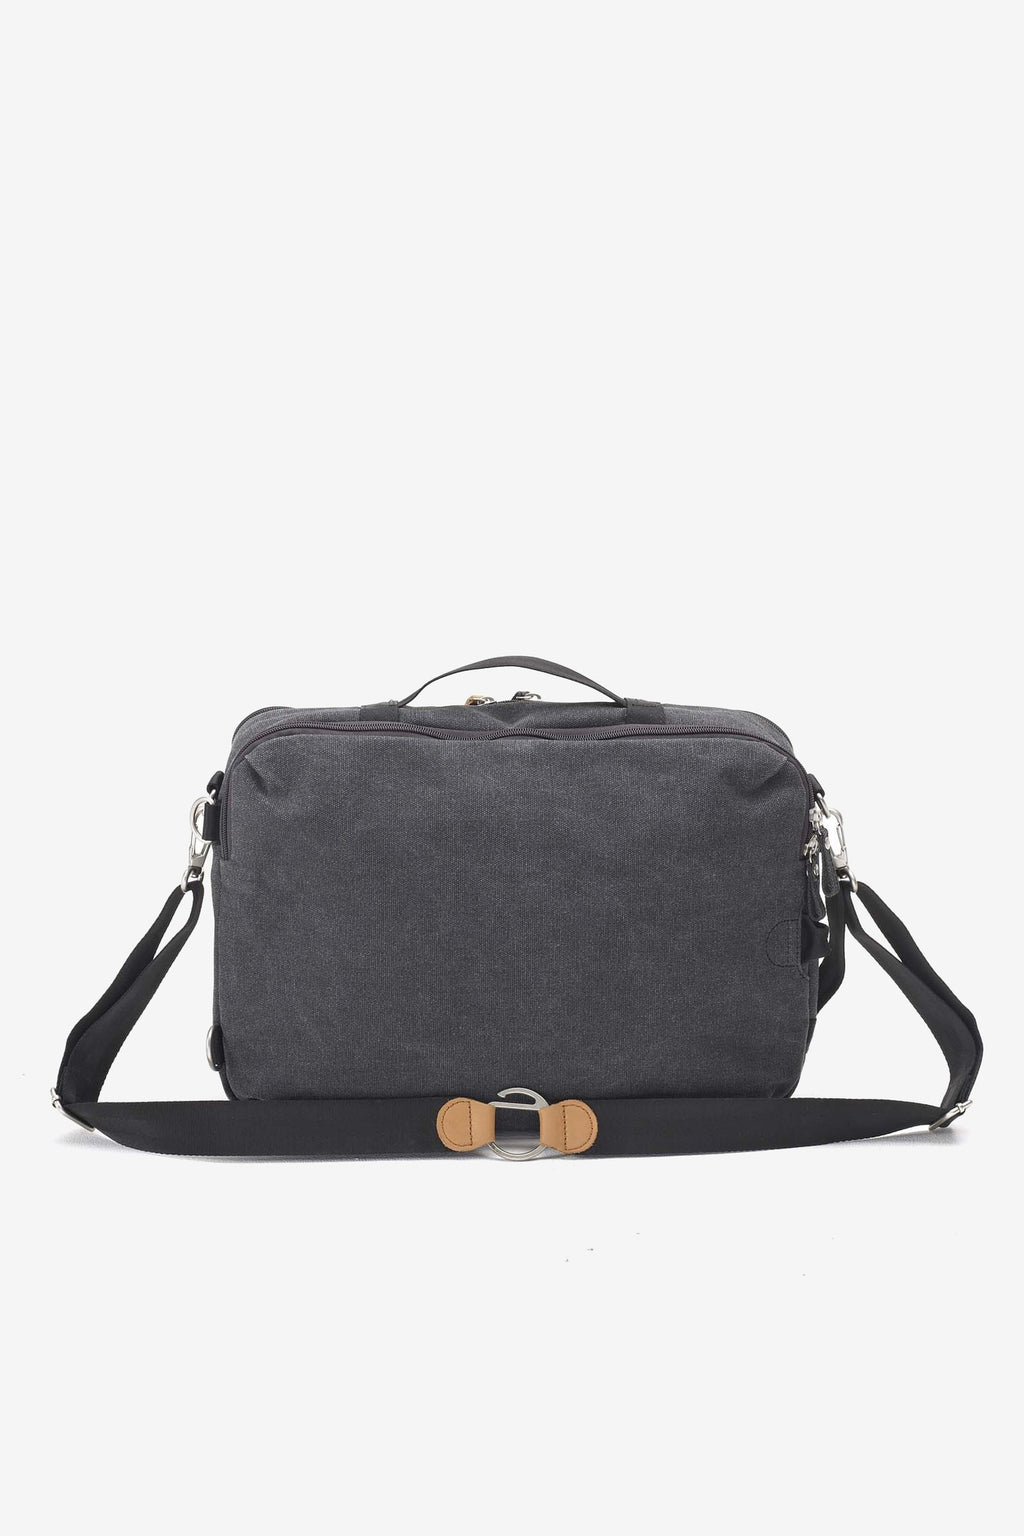 Simple Office Bag Washed Black, Bags, QWSTION - Six and Sons